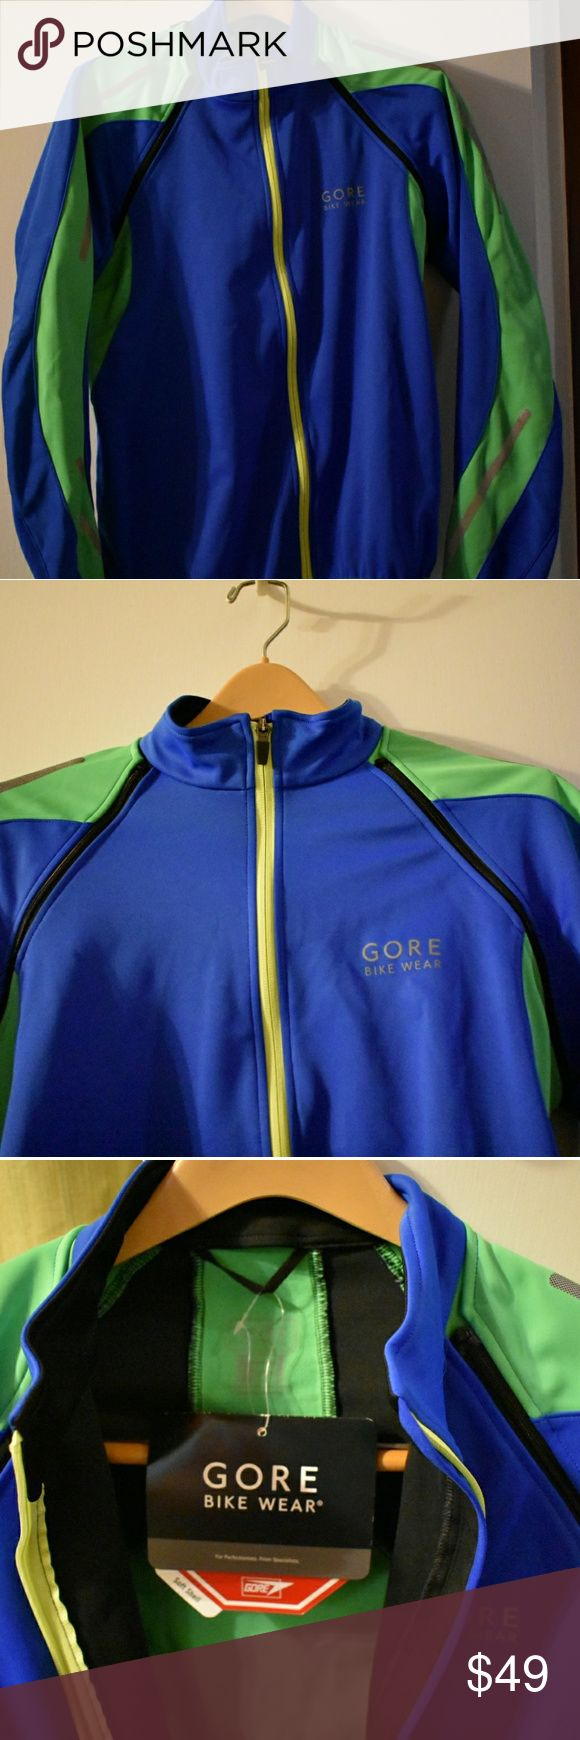 NWT MENS Gore Cycling Shirt/Jacket US size Medium. New with tags. Windstopper technology. Zip up. Convertible sleeves from long can zip off to short sleeves. Multiple reflective application. Very nice three pocket in back. Safety yellow piping on blue and green performance cycling jacket. Ask questions about this one! GORE bikewear Jackets & Coats Performance Jackets